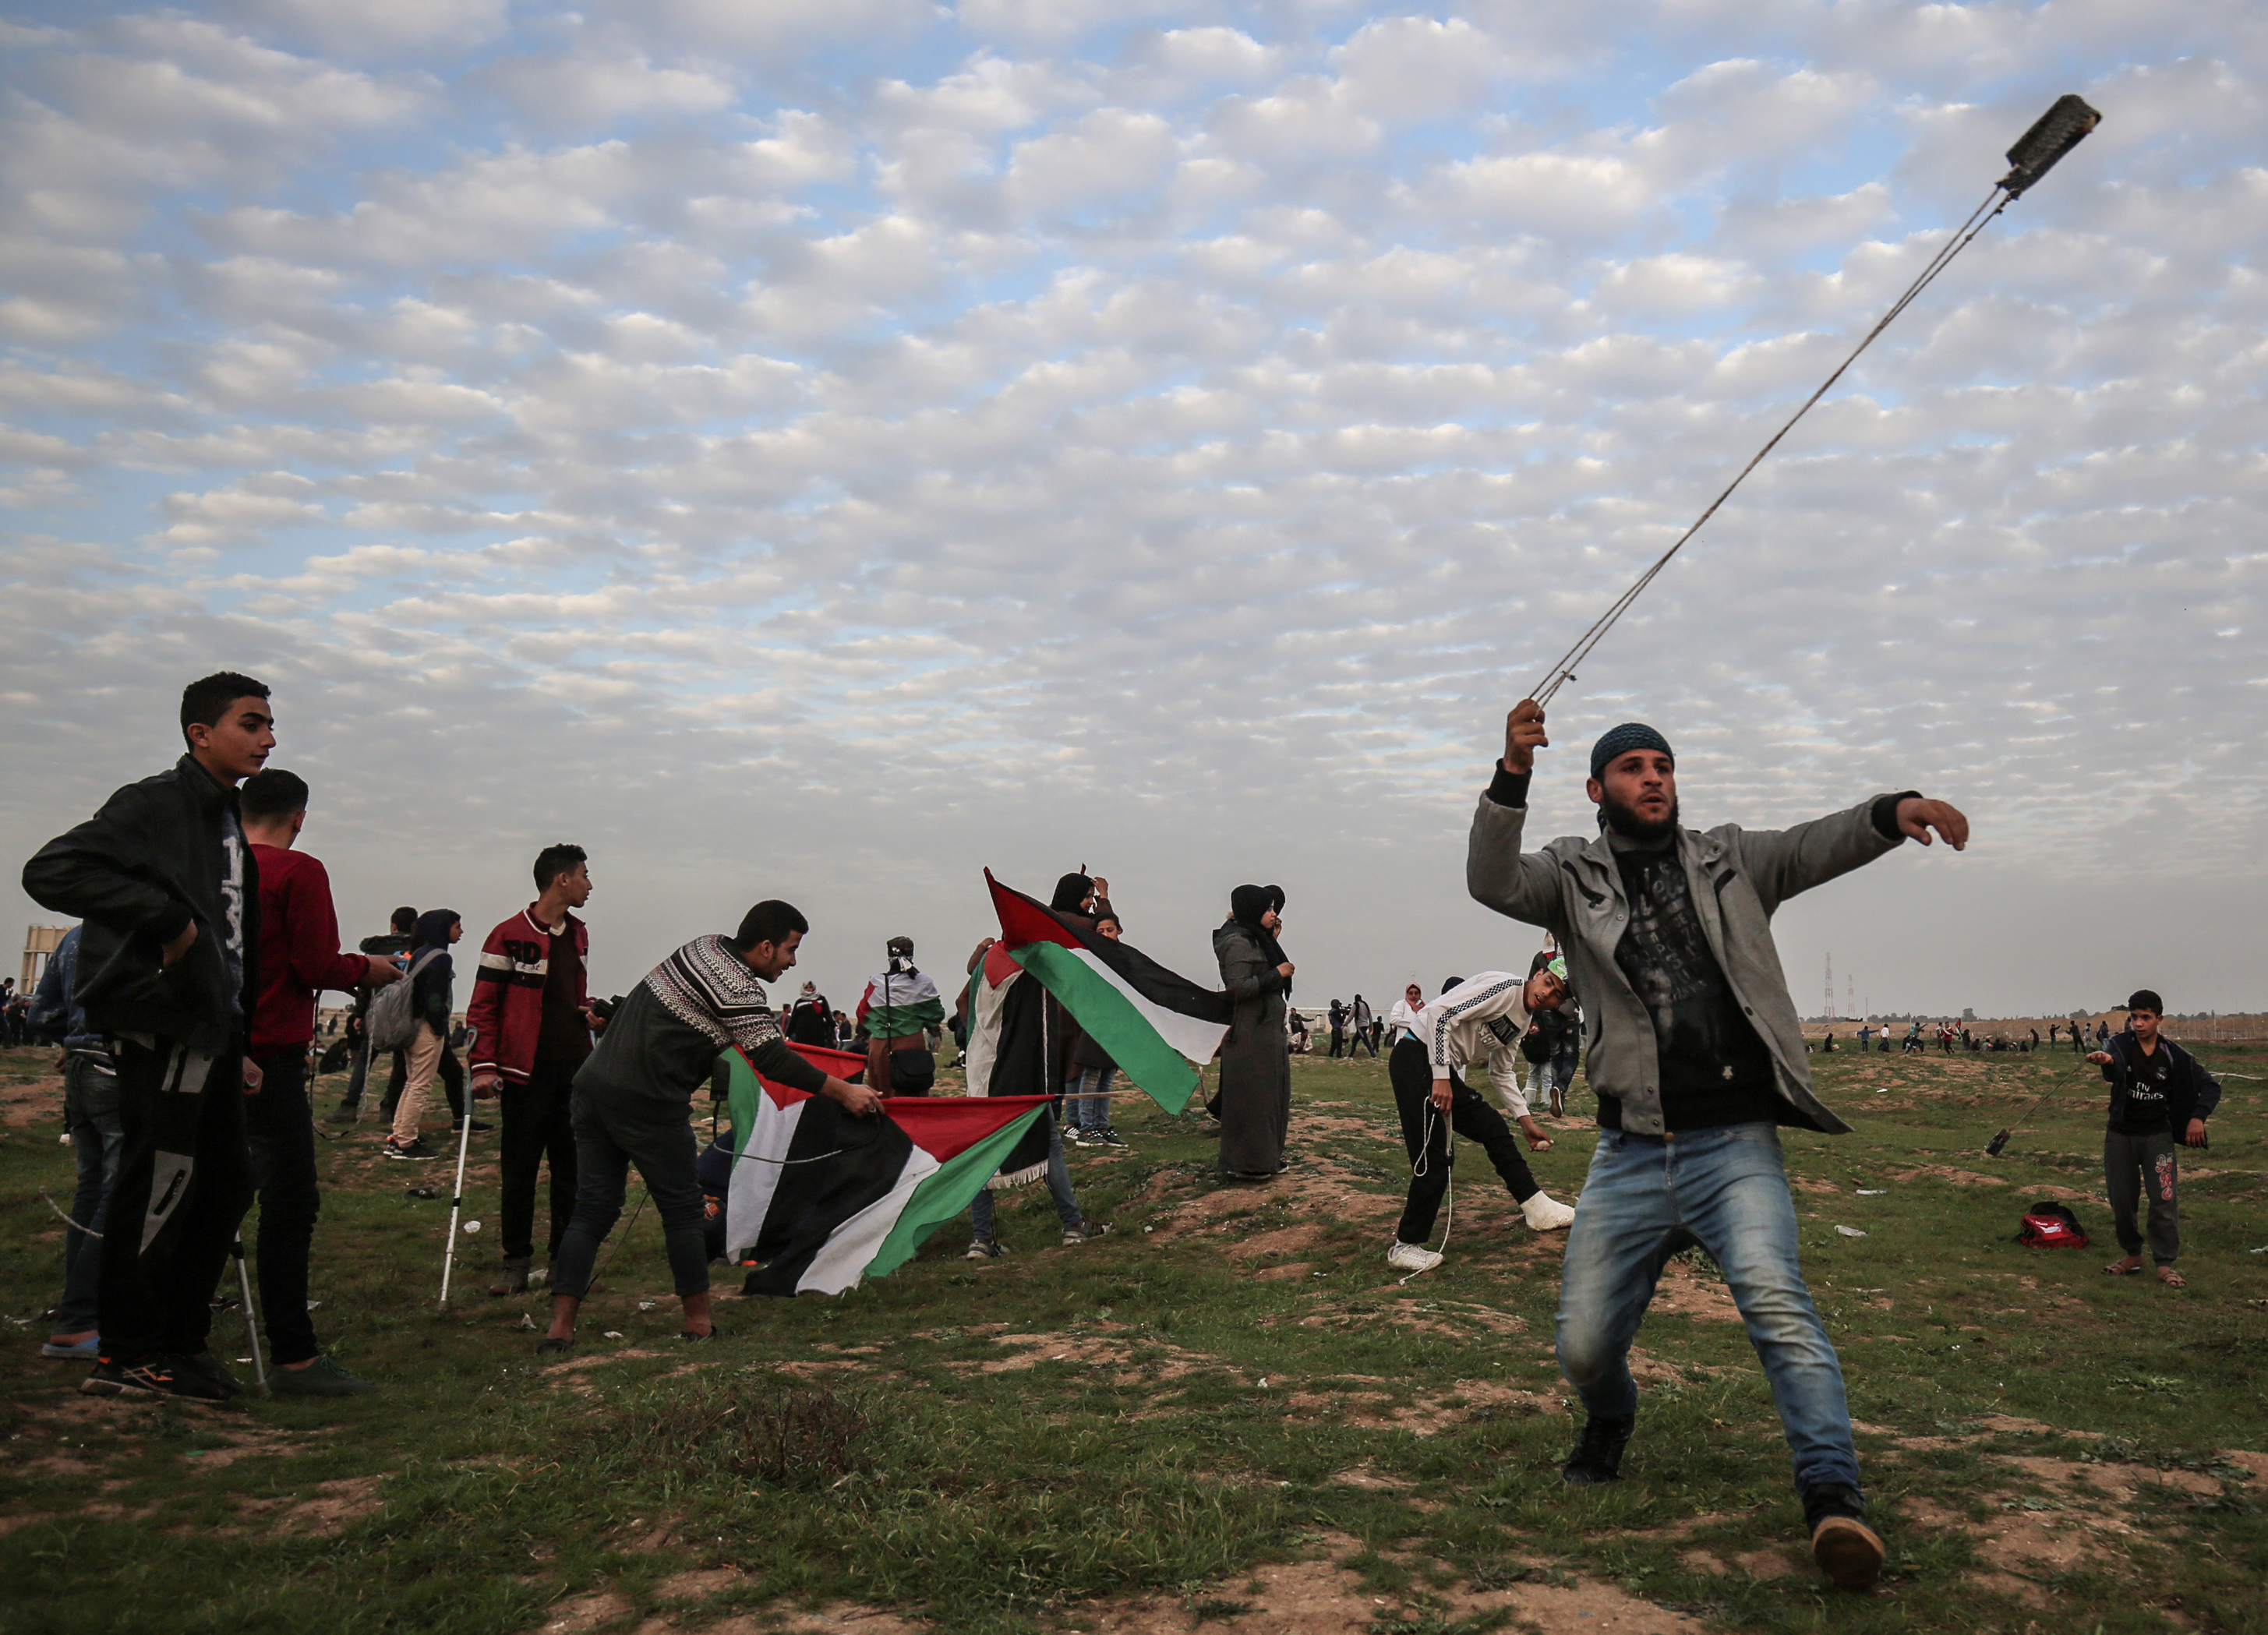 A Palestinian protester uses a slingshot to hurl rocks at Israeli troops as others carry national flags during a demonstration near the fence along the border with Israel east of Gaza City